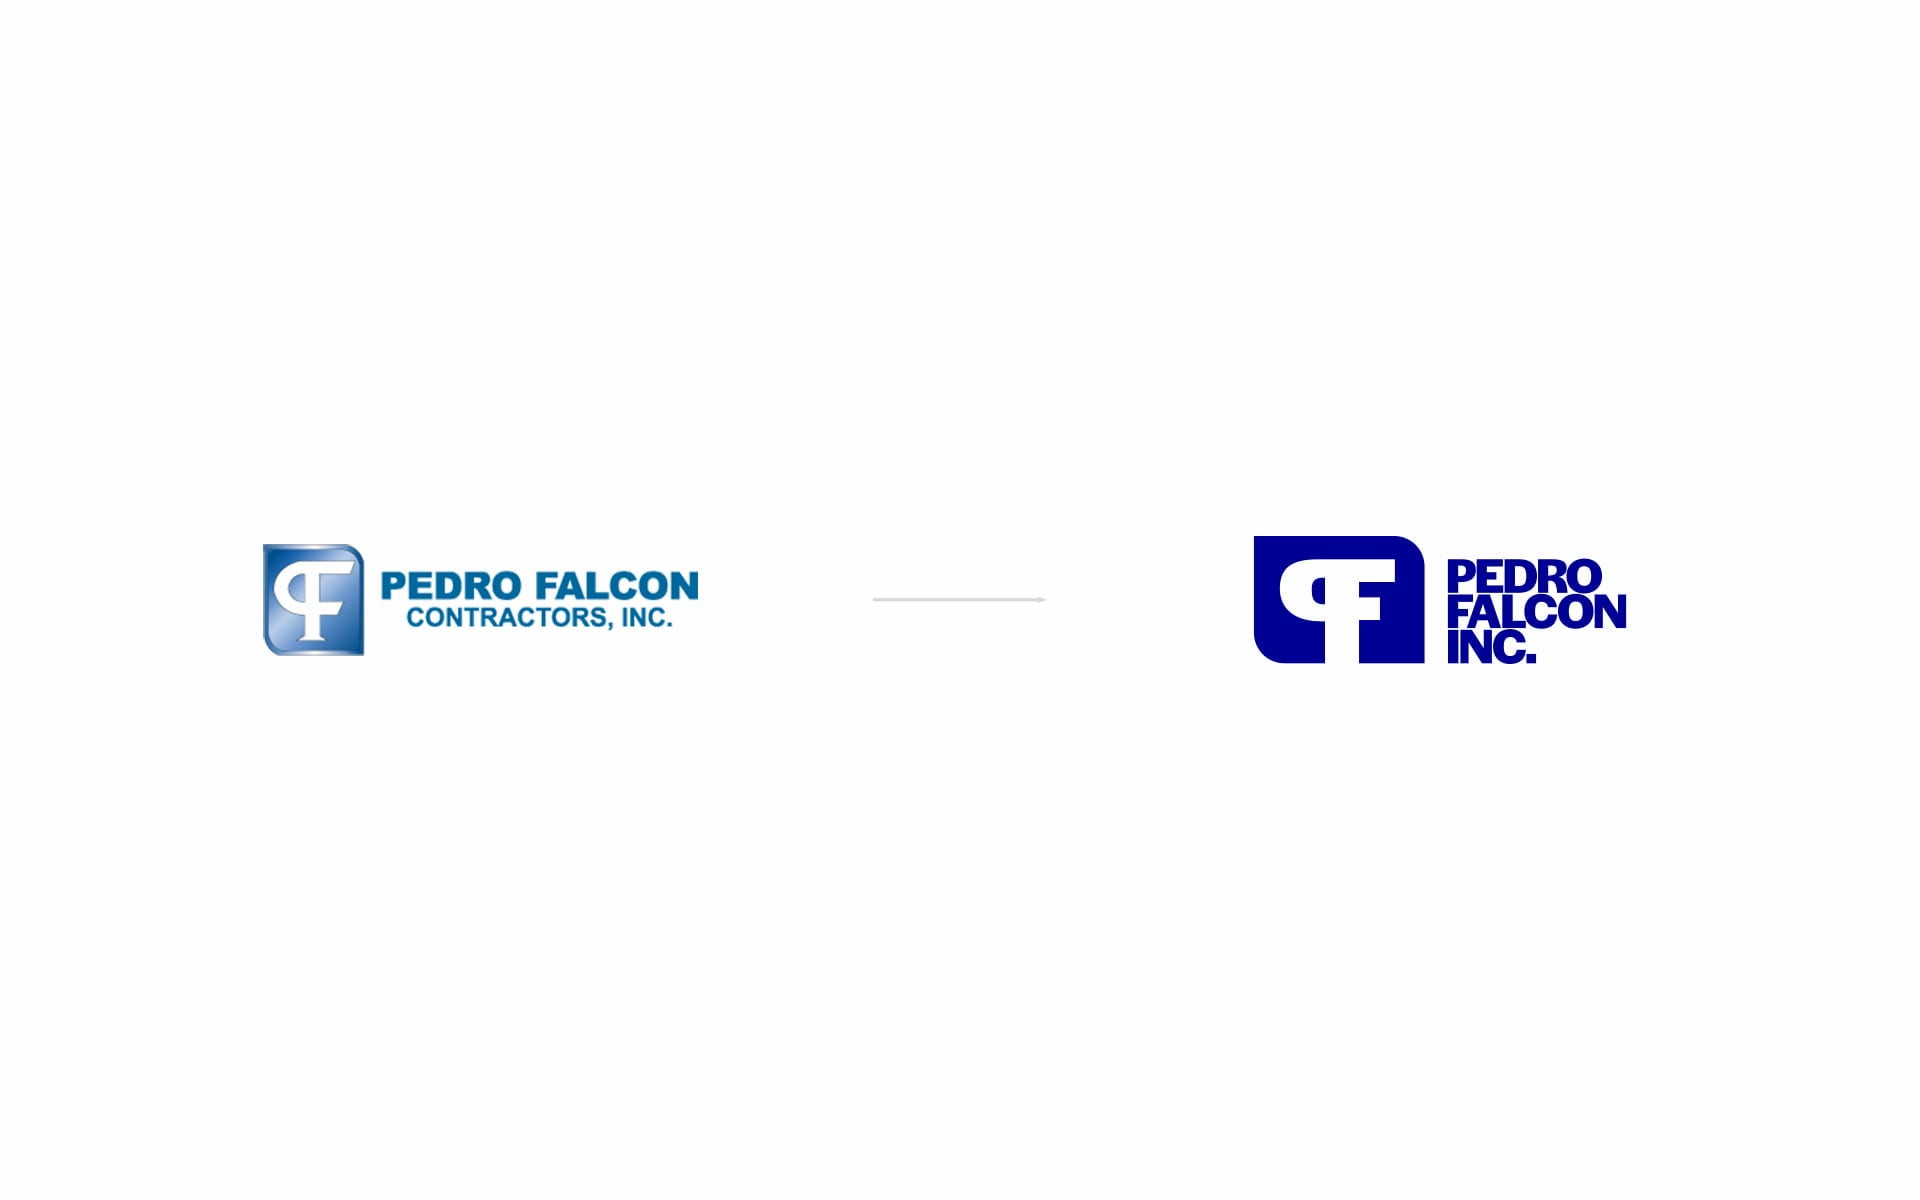 New Pedro Falcon Contractors logo next to the old one